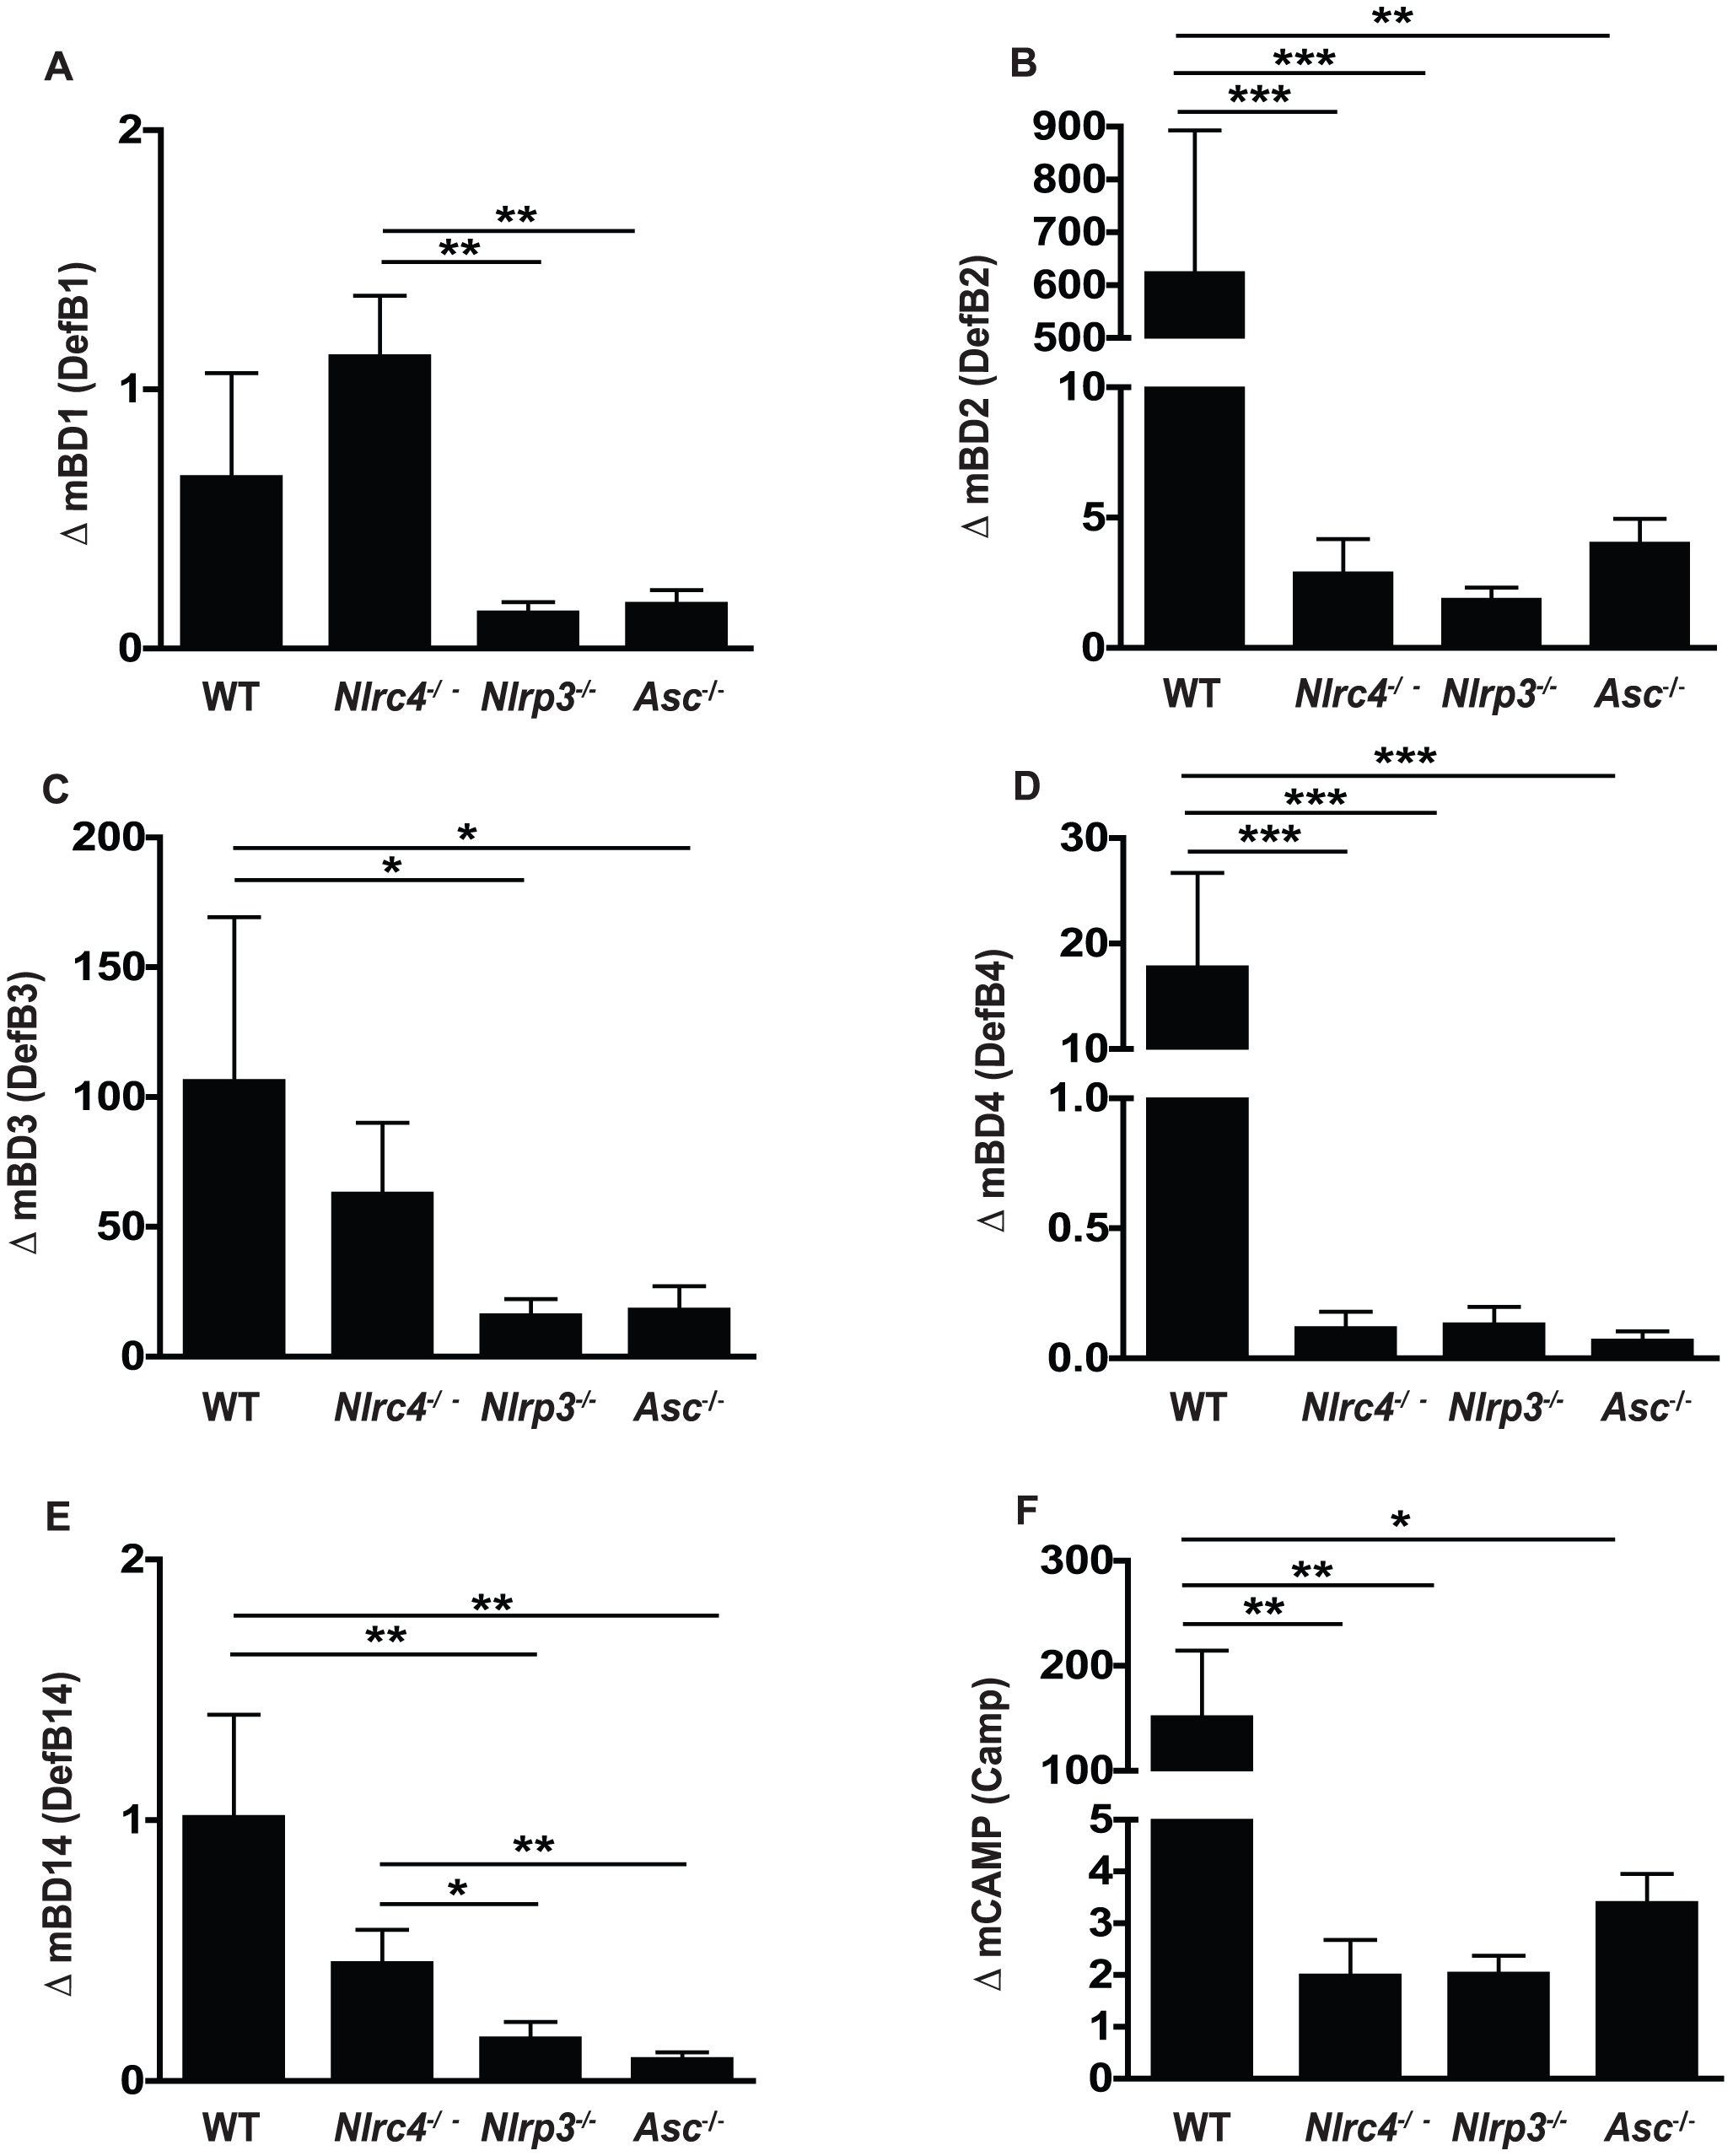 Antimicrobial peptide up-regulation in response to oral infection with <i>Candida albicans</i> is impaired in NLRP3, ASC and NLRC4 - deficient mice.